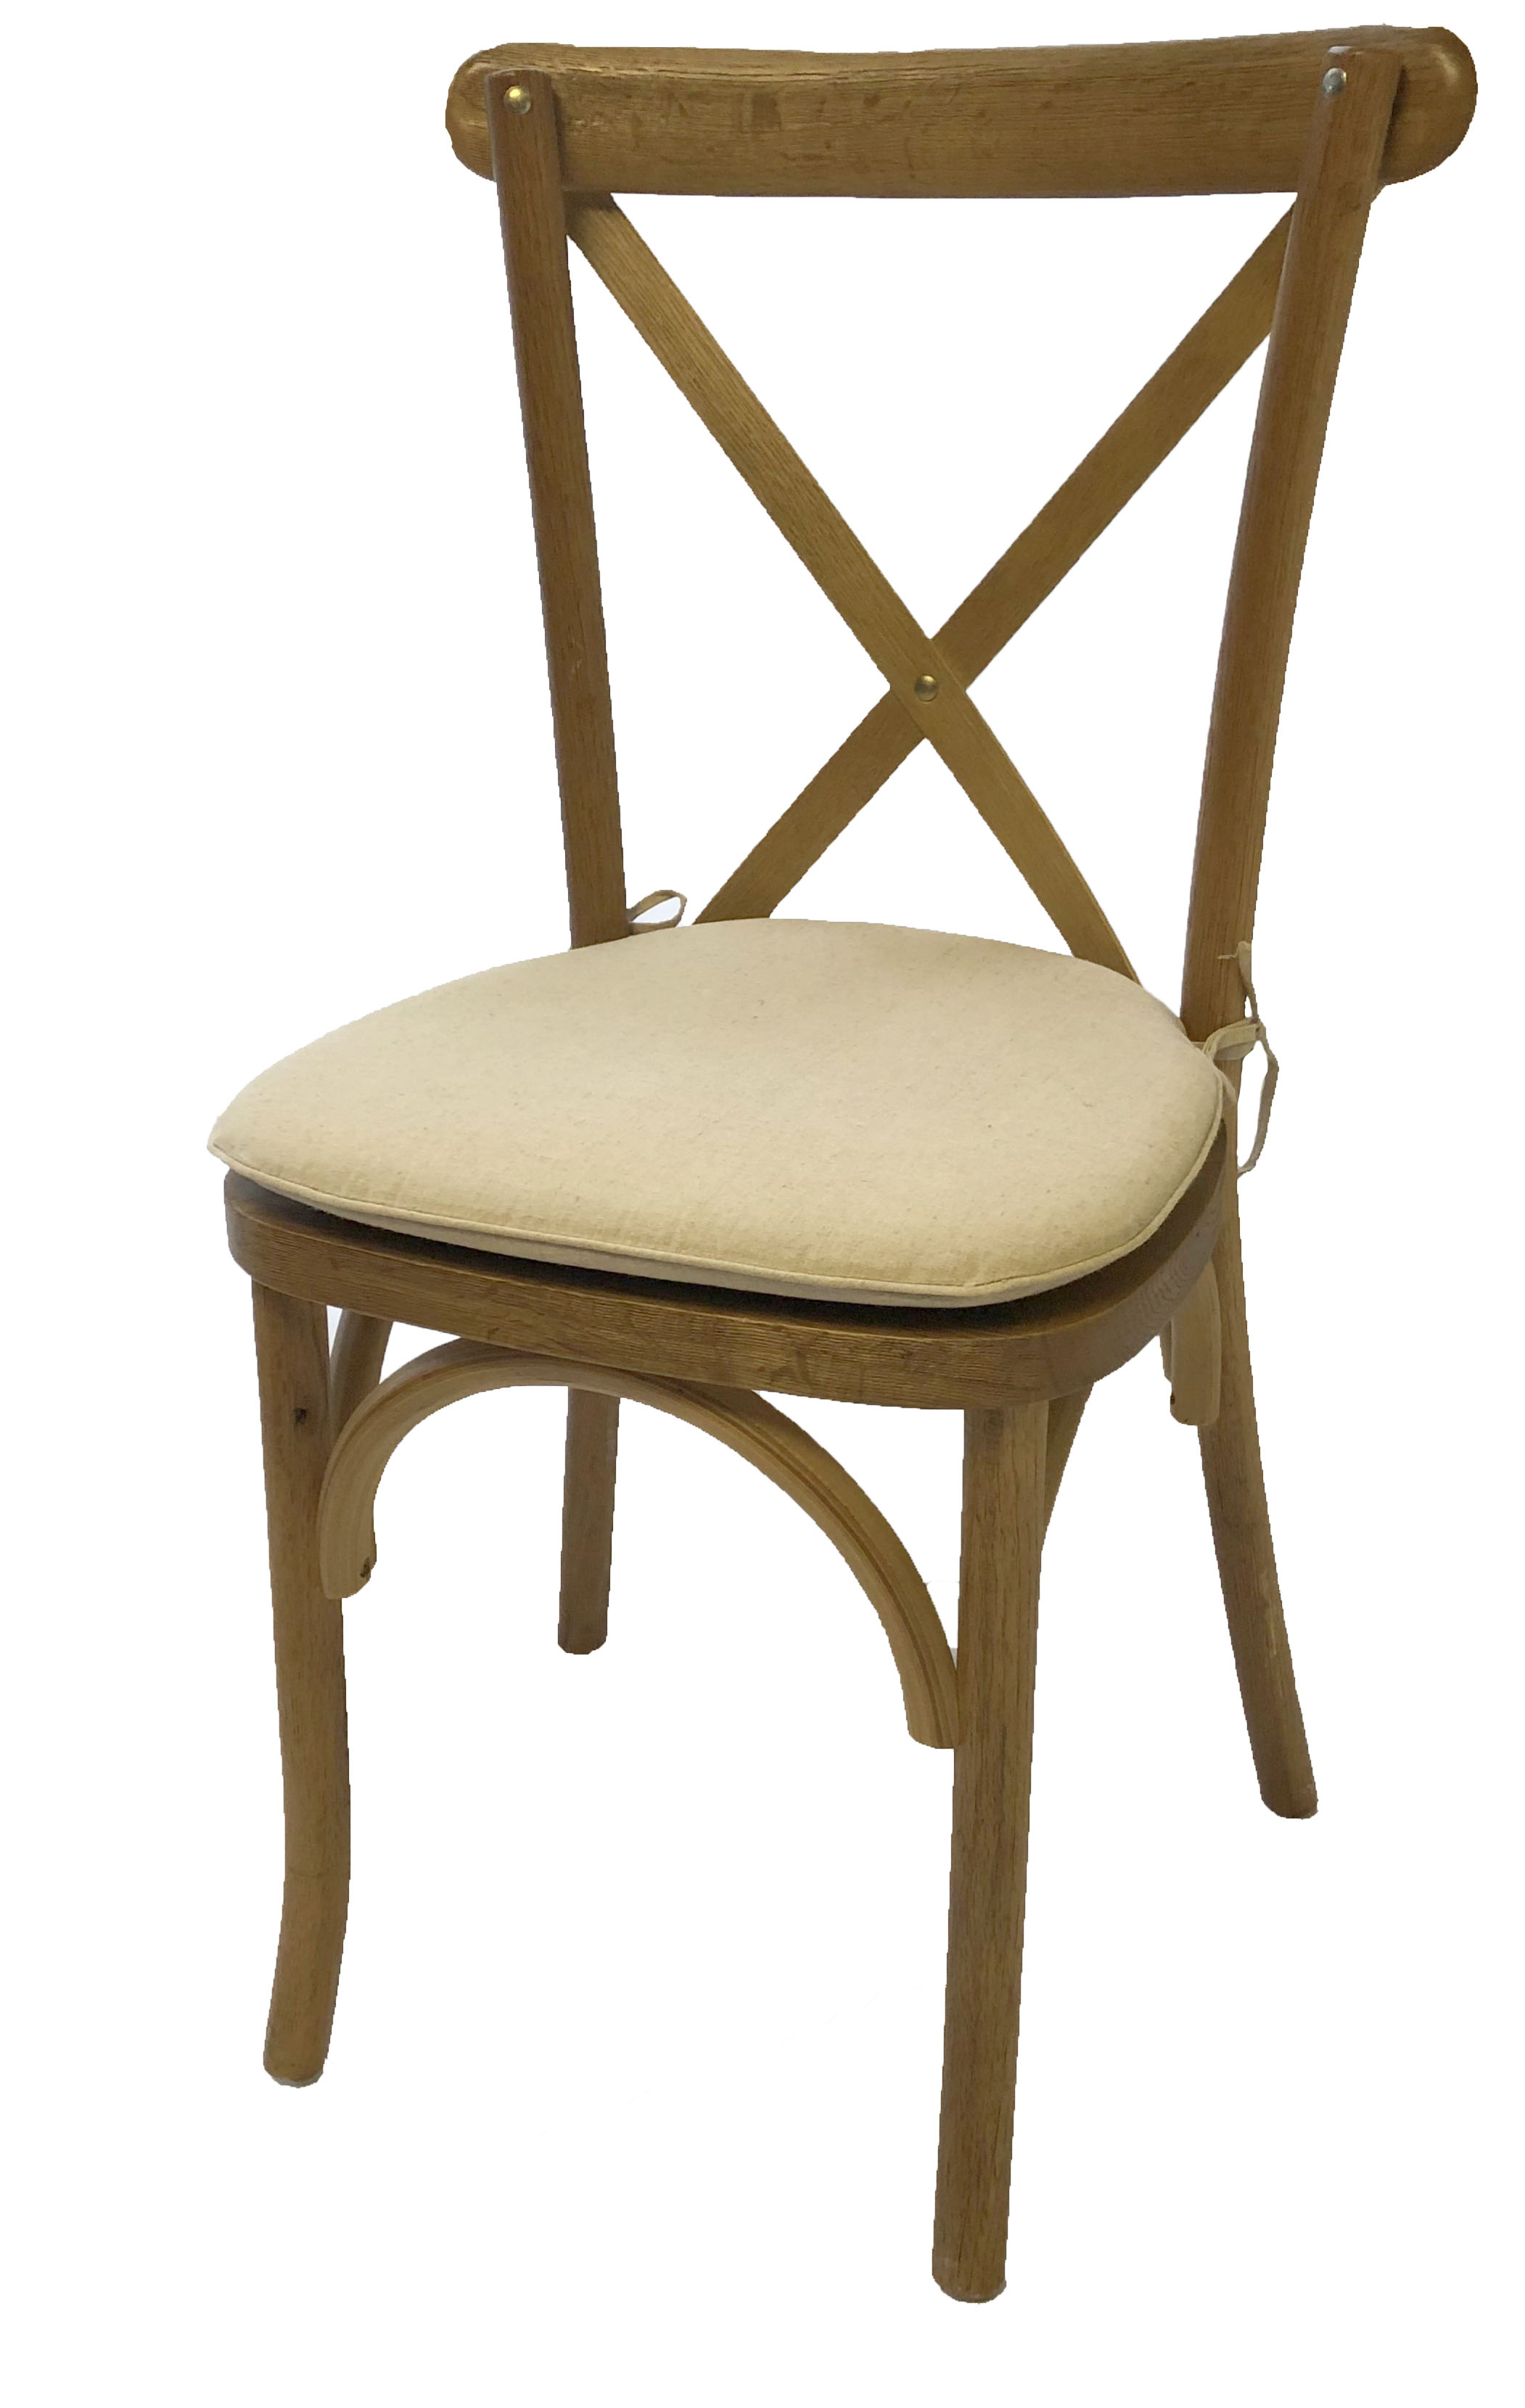 category_F1303 - Cross Back Chair